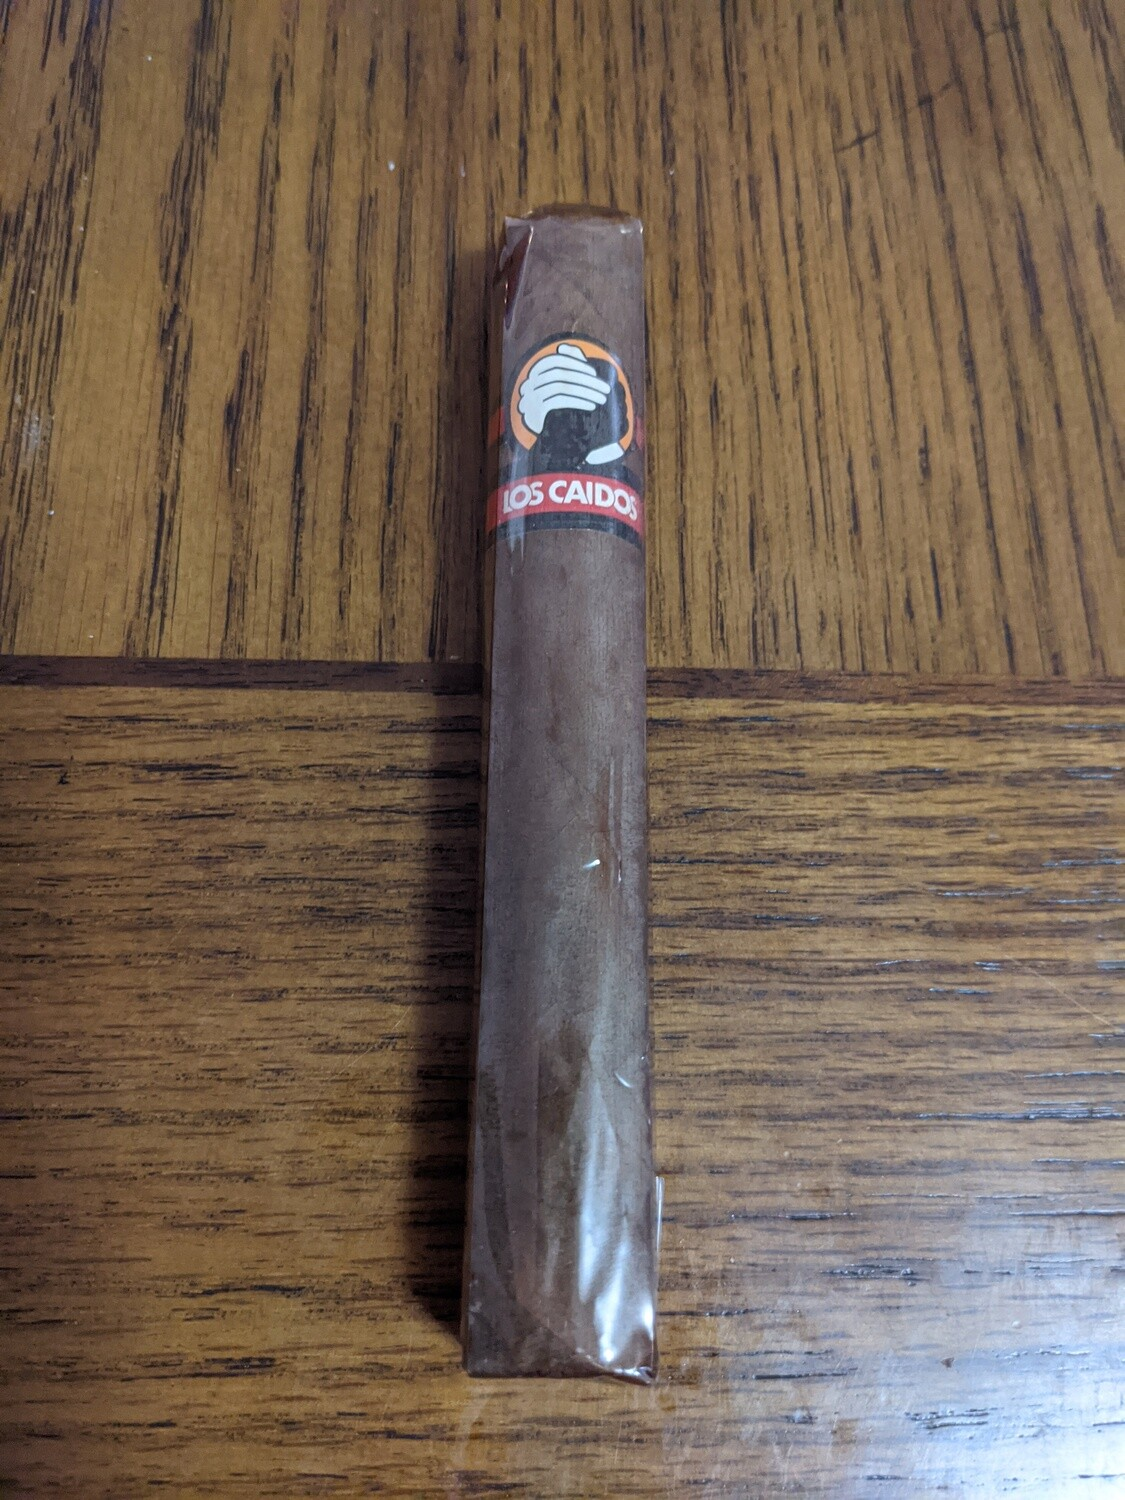 Los Caidos Red Toro 6 X 54 Single Cigar